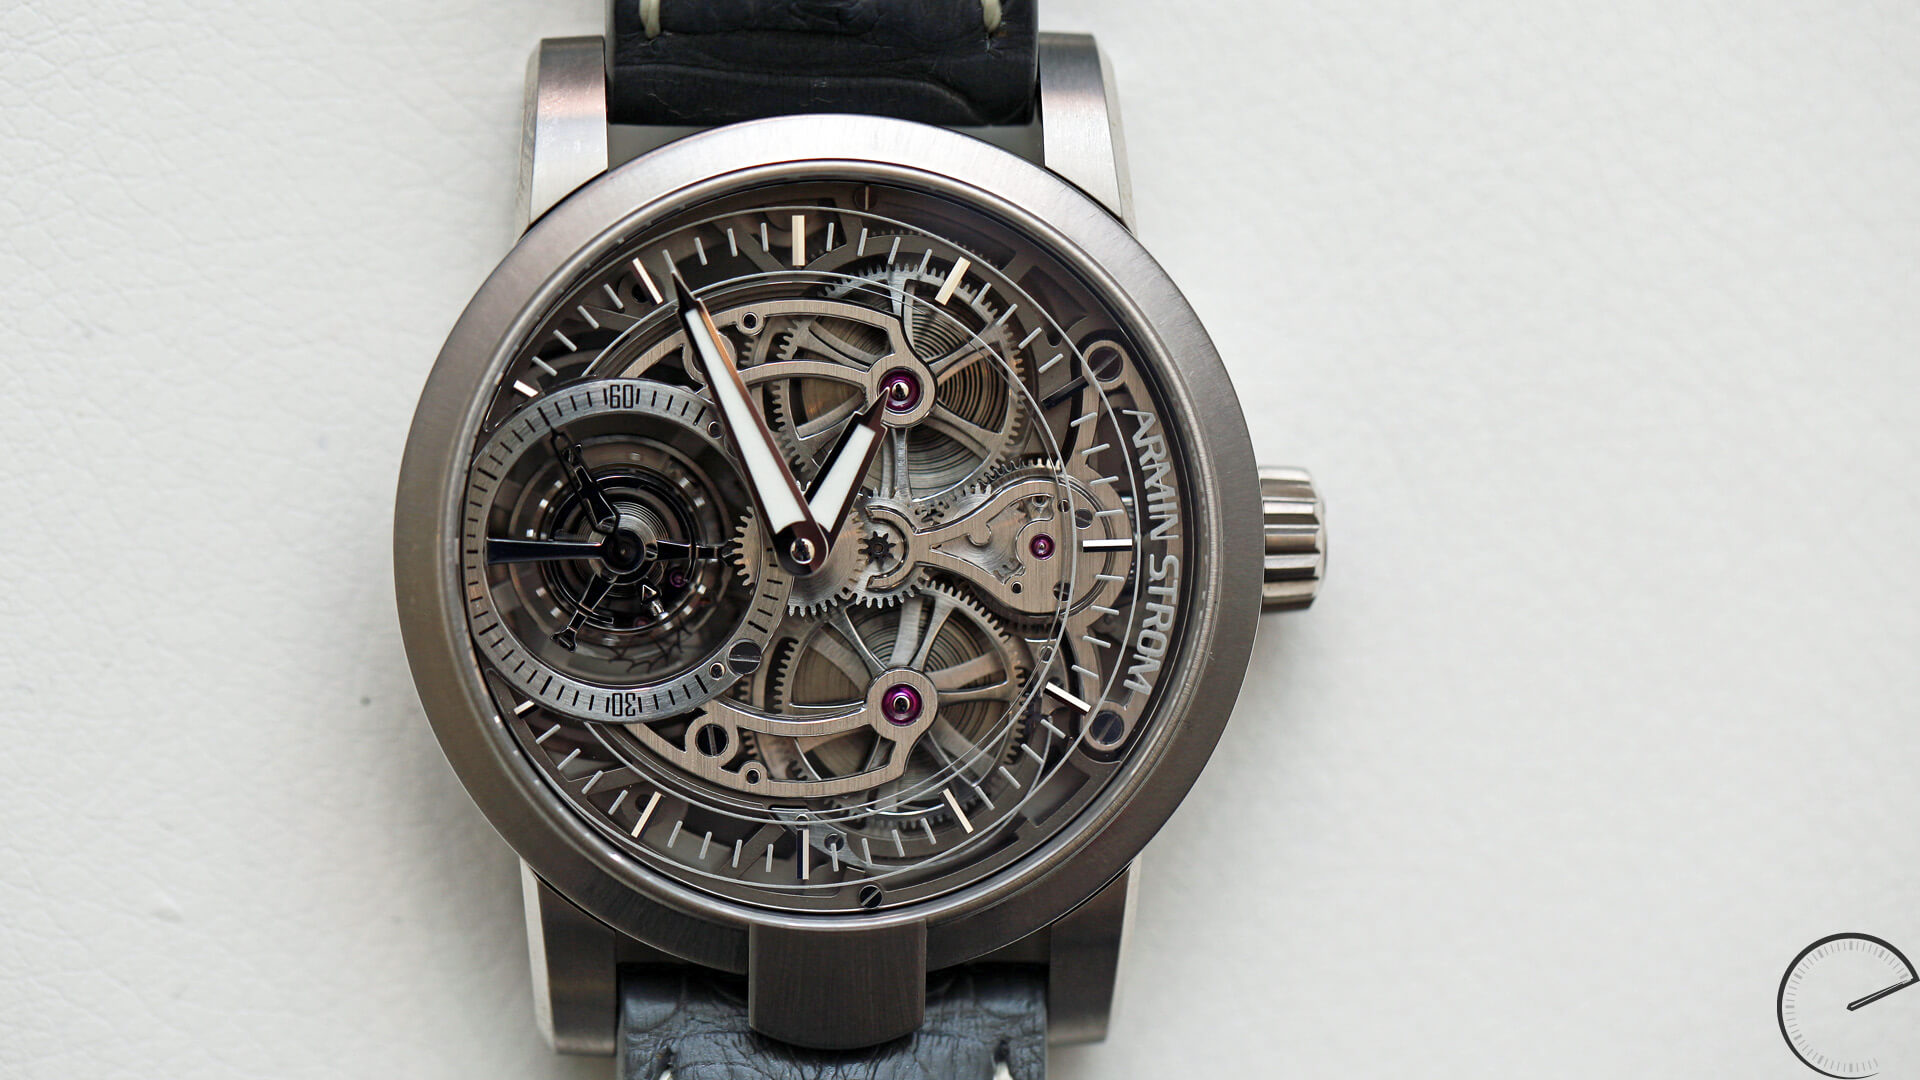 Armin_Strom_Tourbillon_Skeleton_Air_dial1 - ESCAPEMENT magazine - watch reviews for purists by Angus Davies